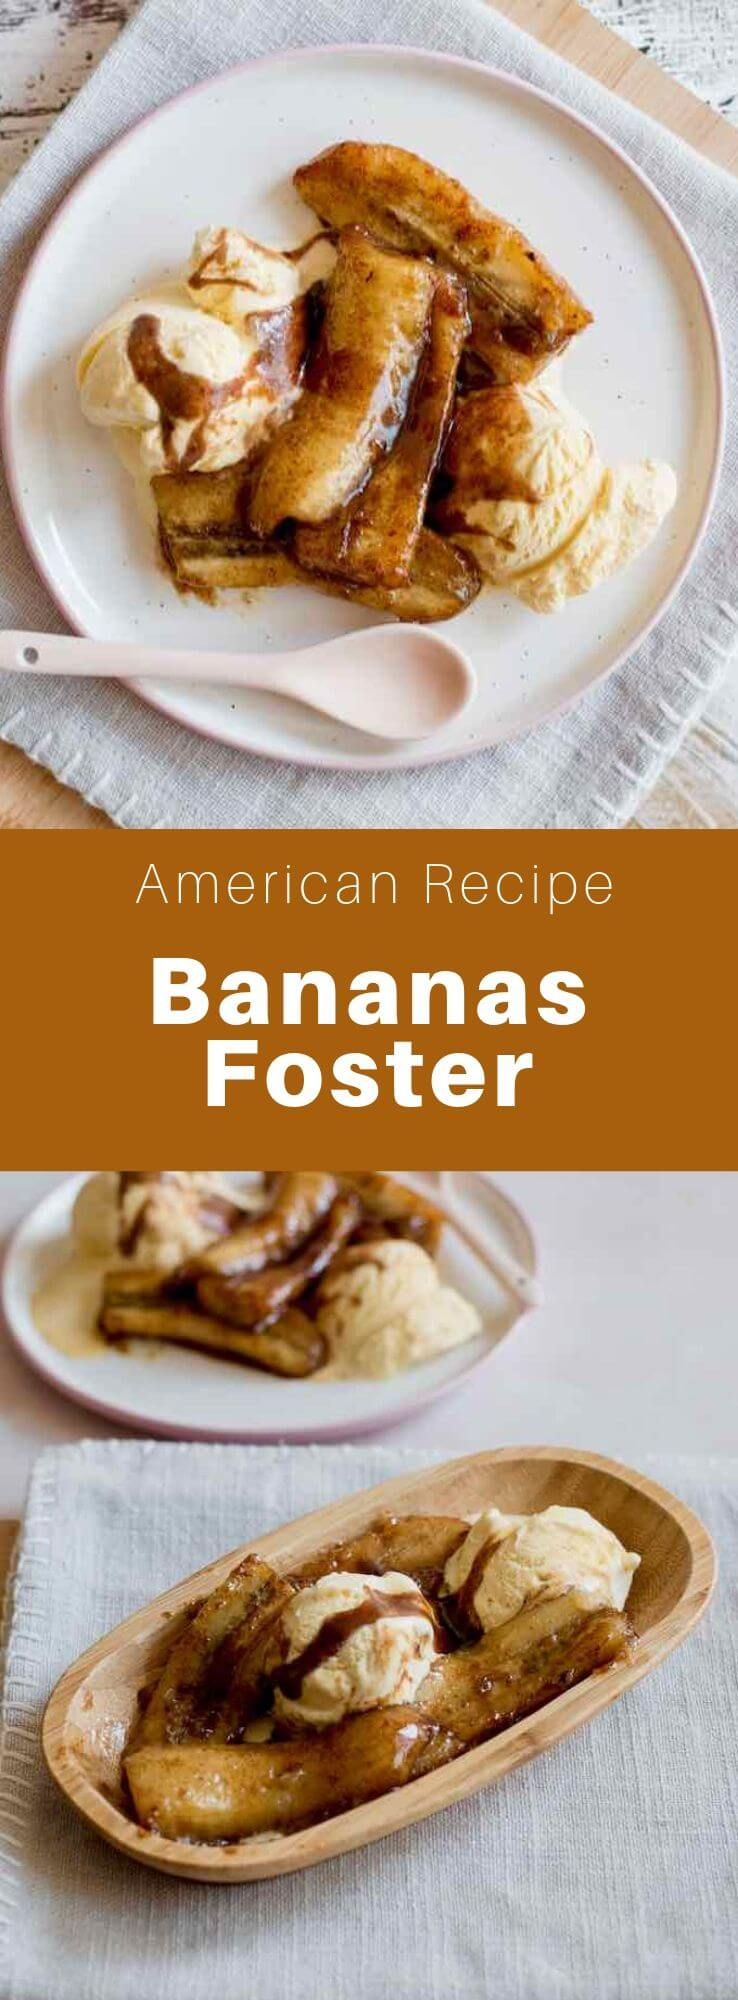 Bananas Foster is a New Orleans dessert made from flambéed bananas with banana liqueur and rum, and served with vanilla ice cream. #SouthernFood #SouthernRecipe #SouthernCuisine #AmericanRecipe #AmericanFood #AmericanCuisine #WorldCuisine #196flavors